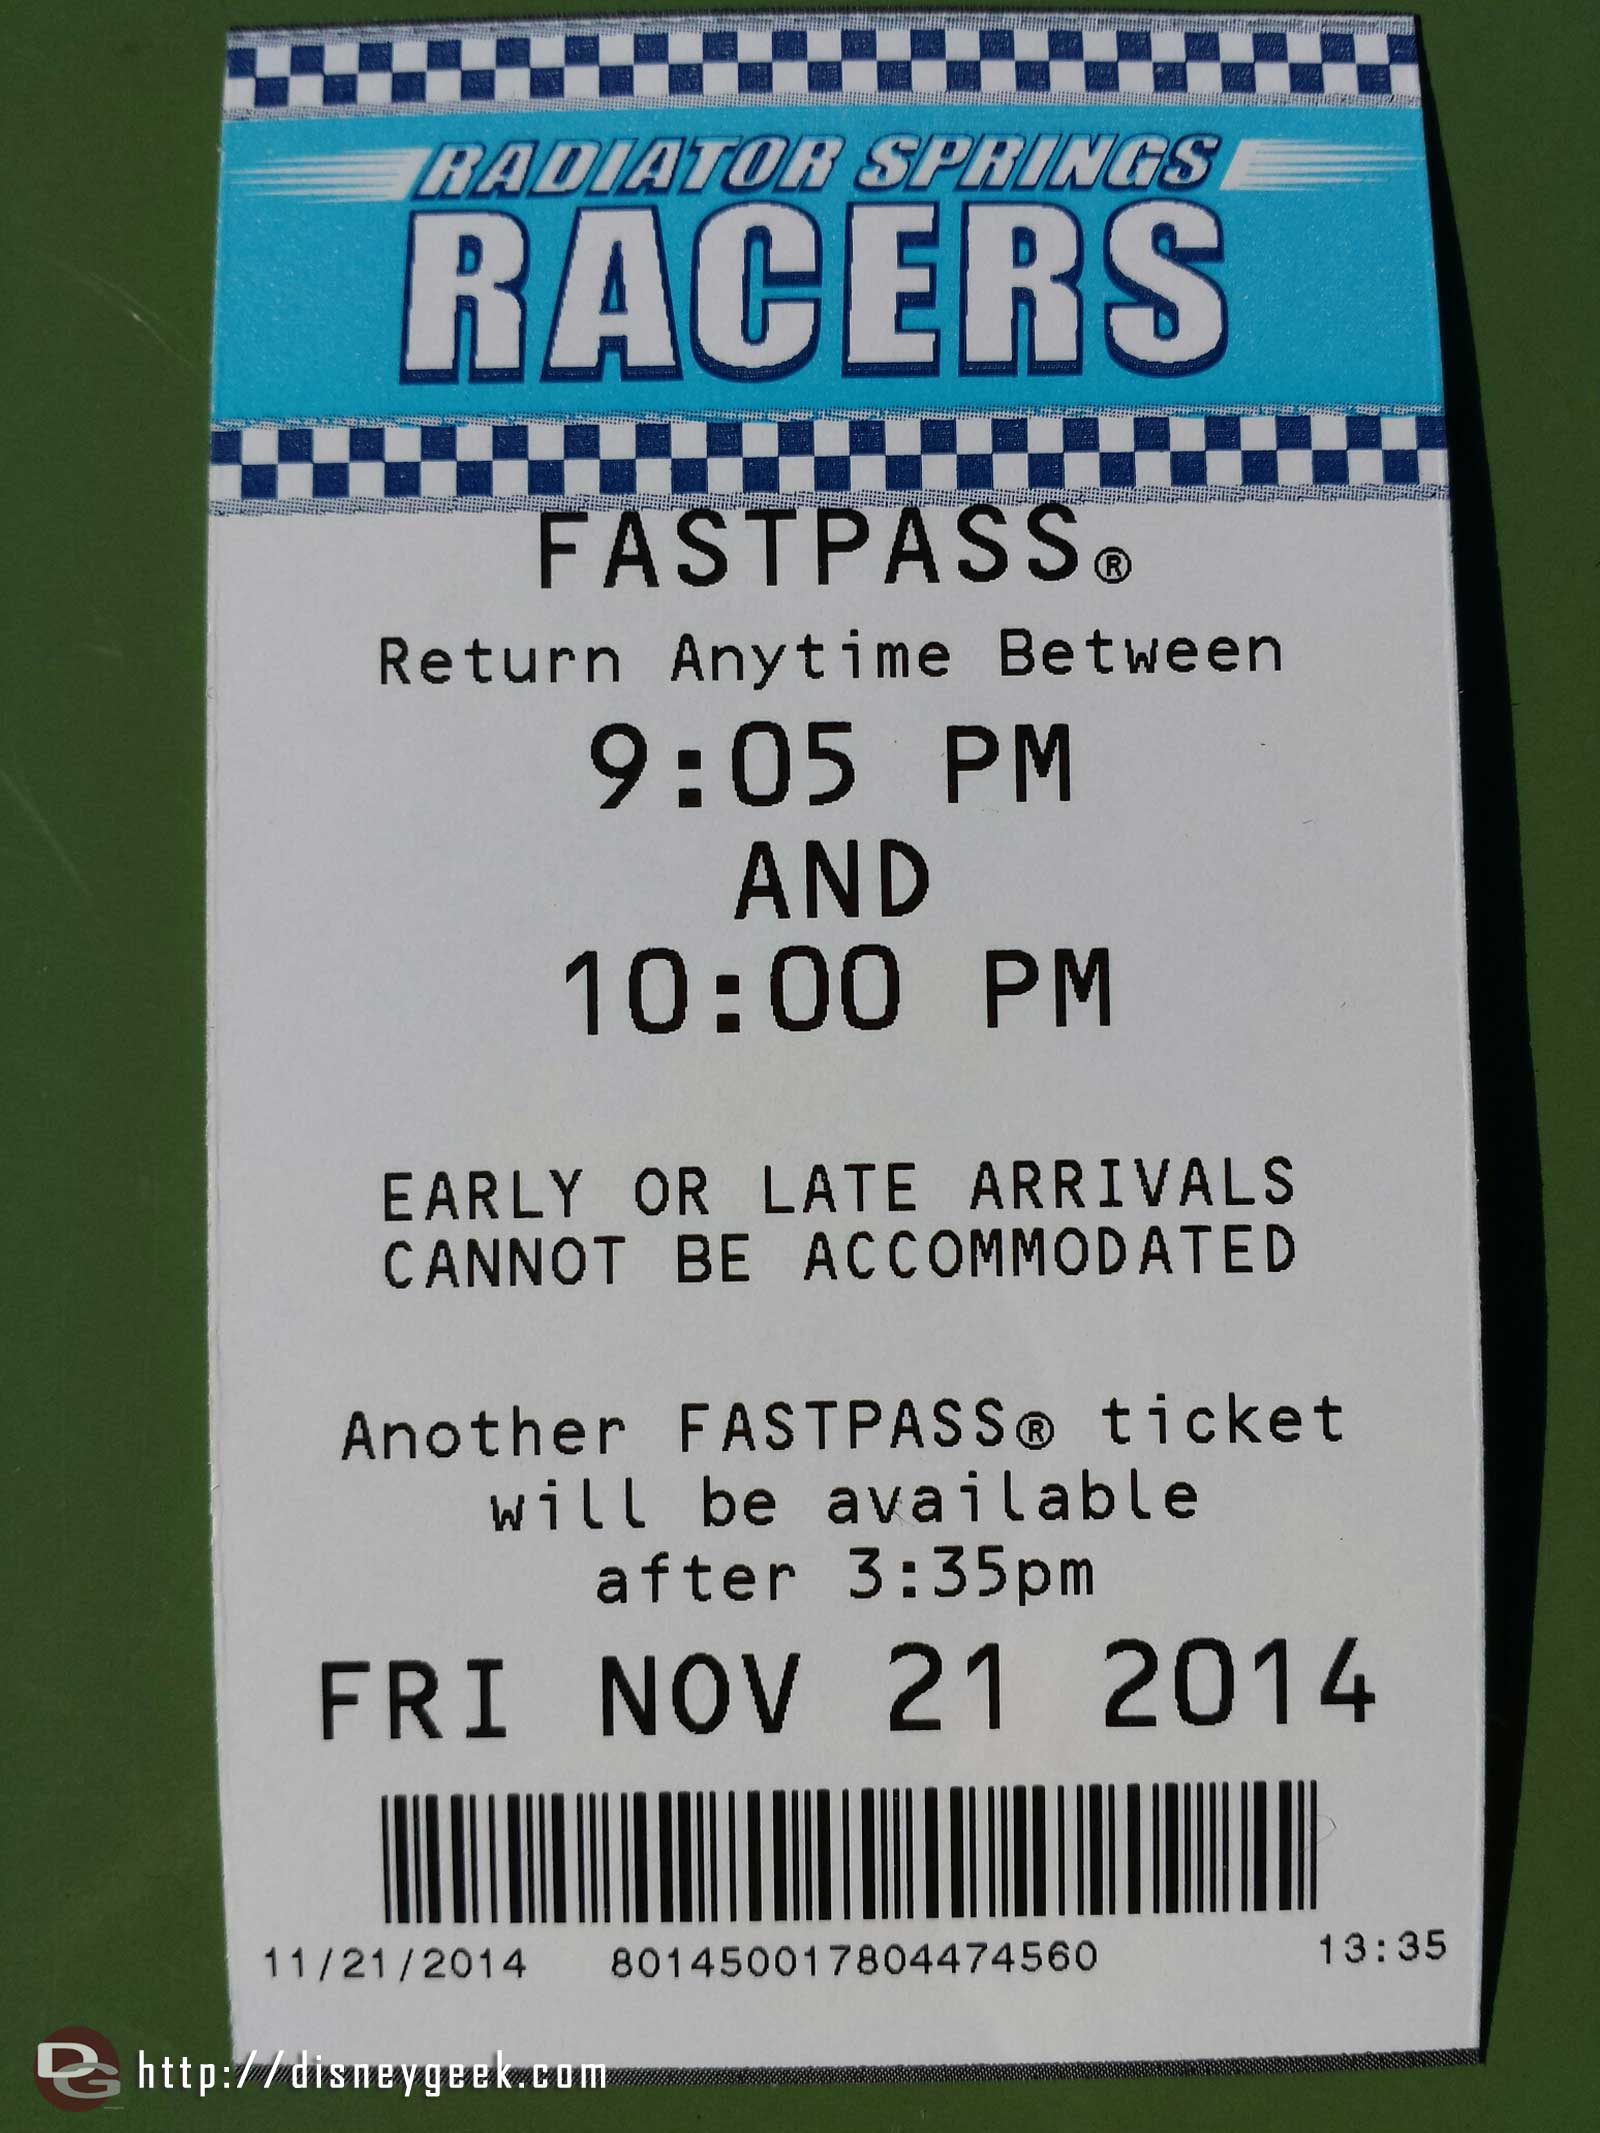 There are still FastPasses available for Radiator Springs Racers (note the return time is less than an hour because of park closing at 10)